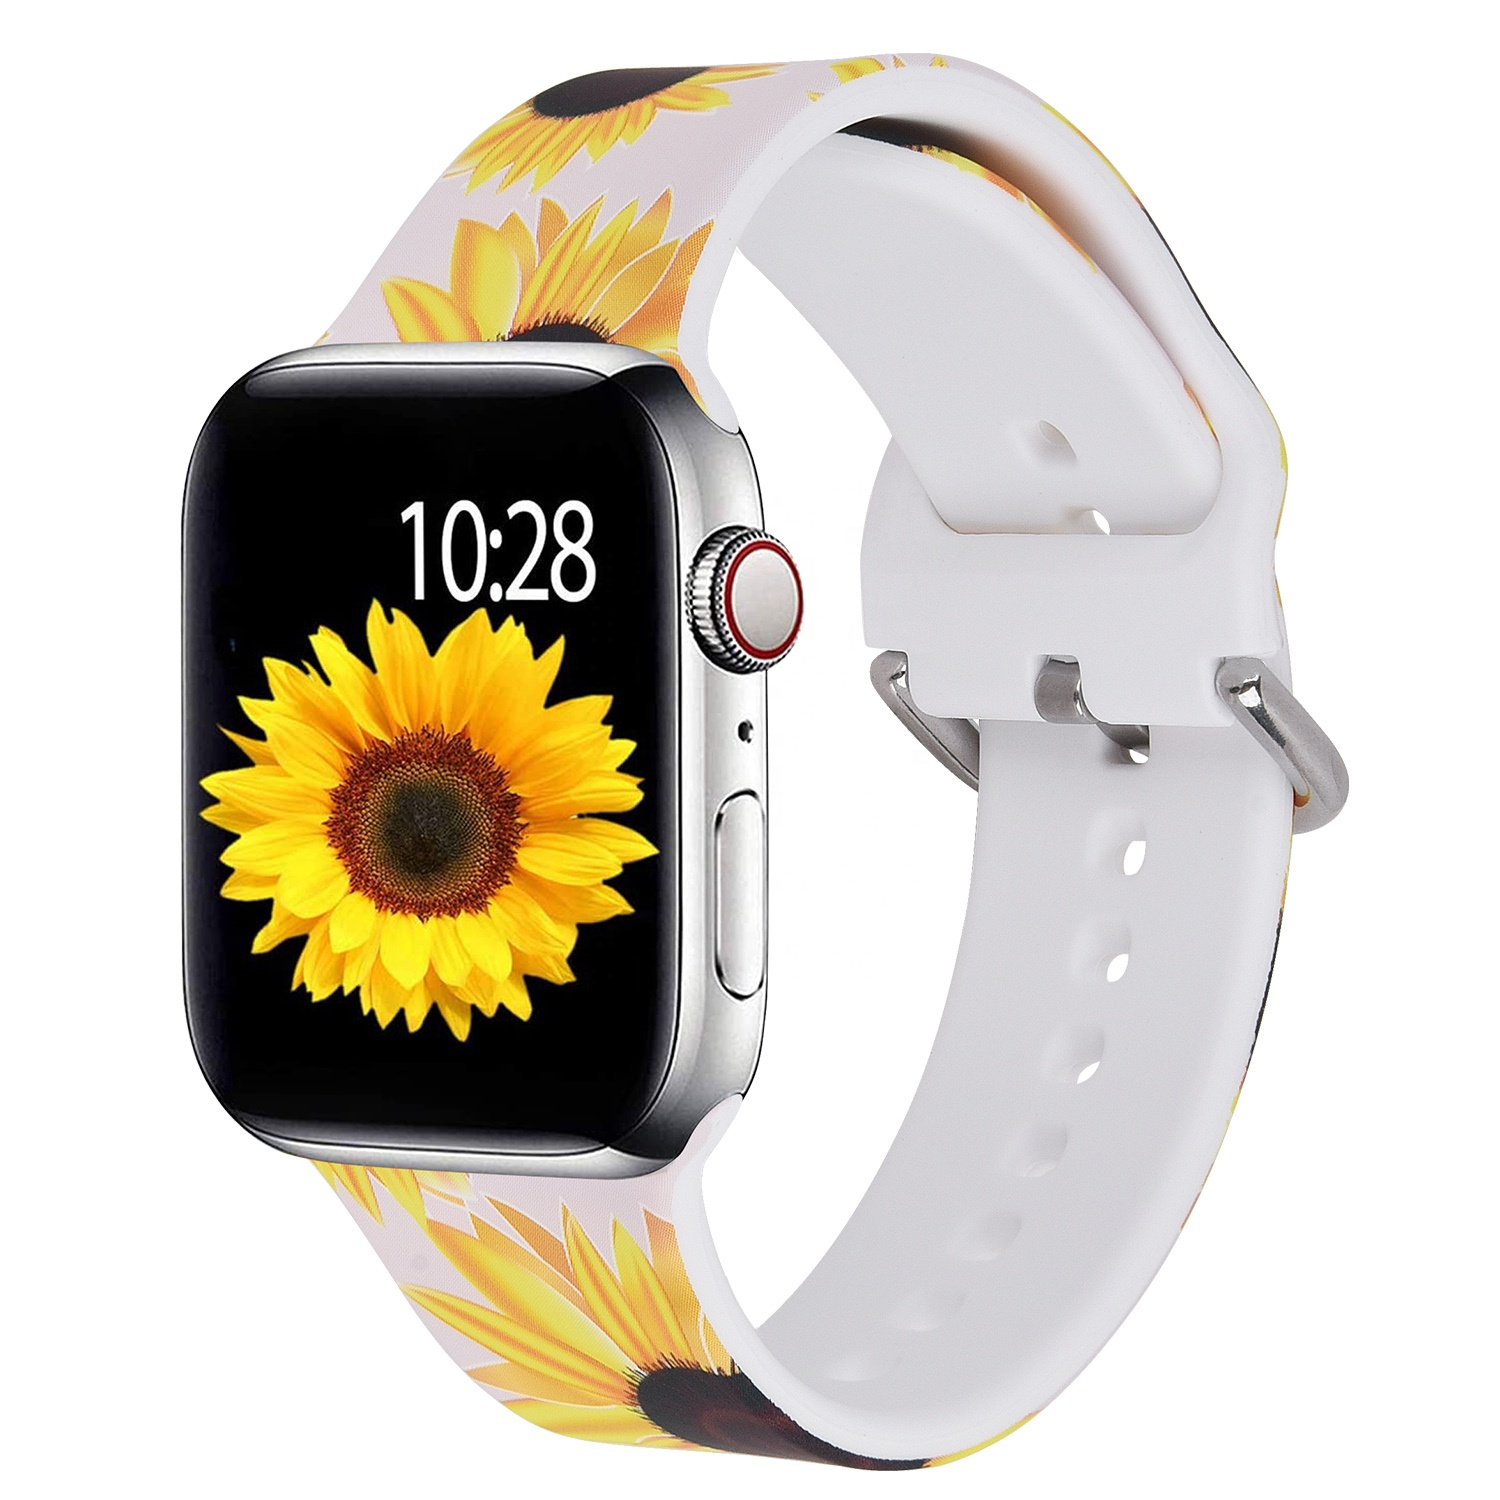 New Designs Durable Heat Transfer Print 40mm 22mm Silicone Watch Strap for Apple Watch Series 5/4/3/2/1